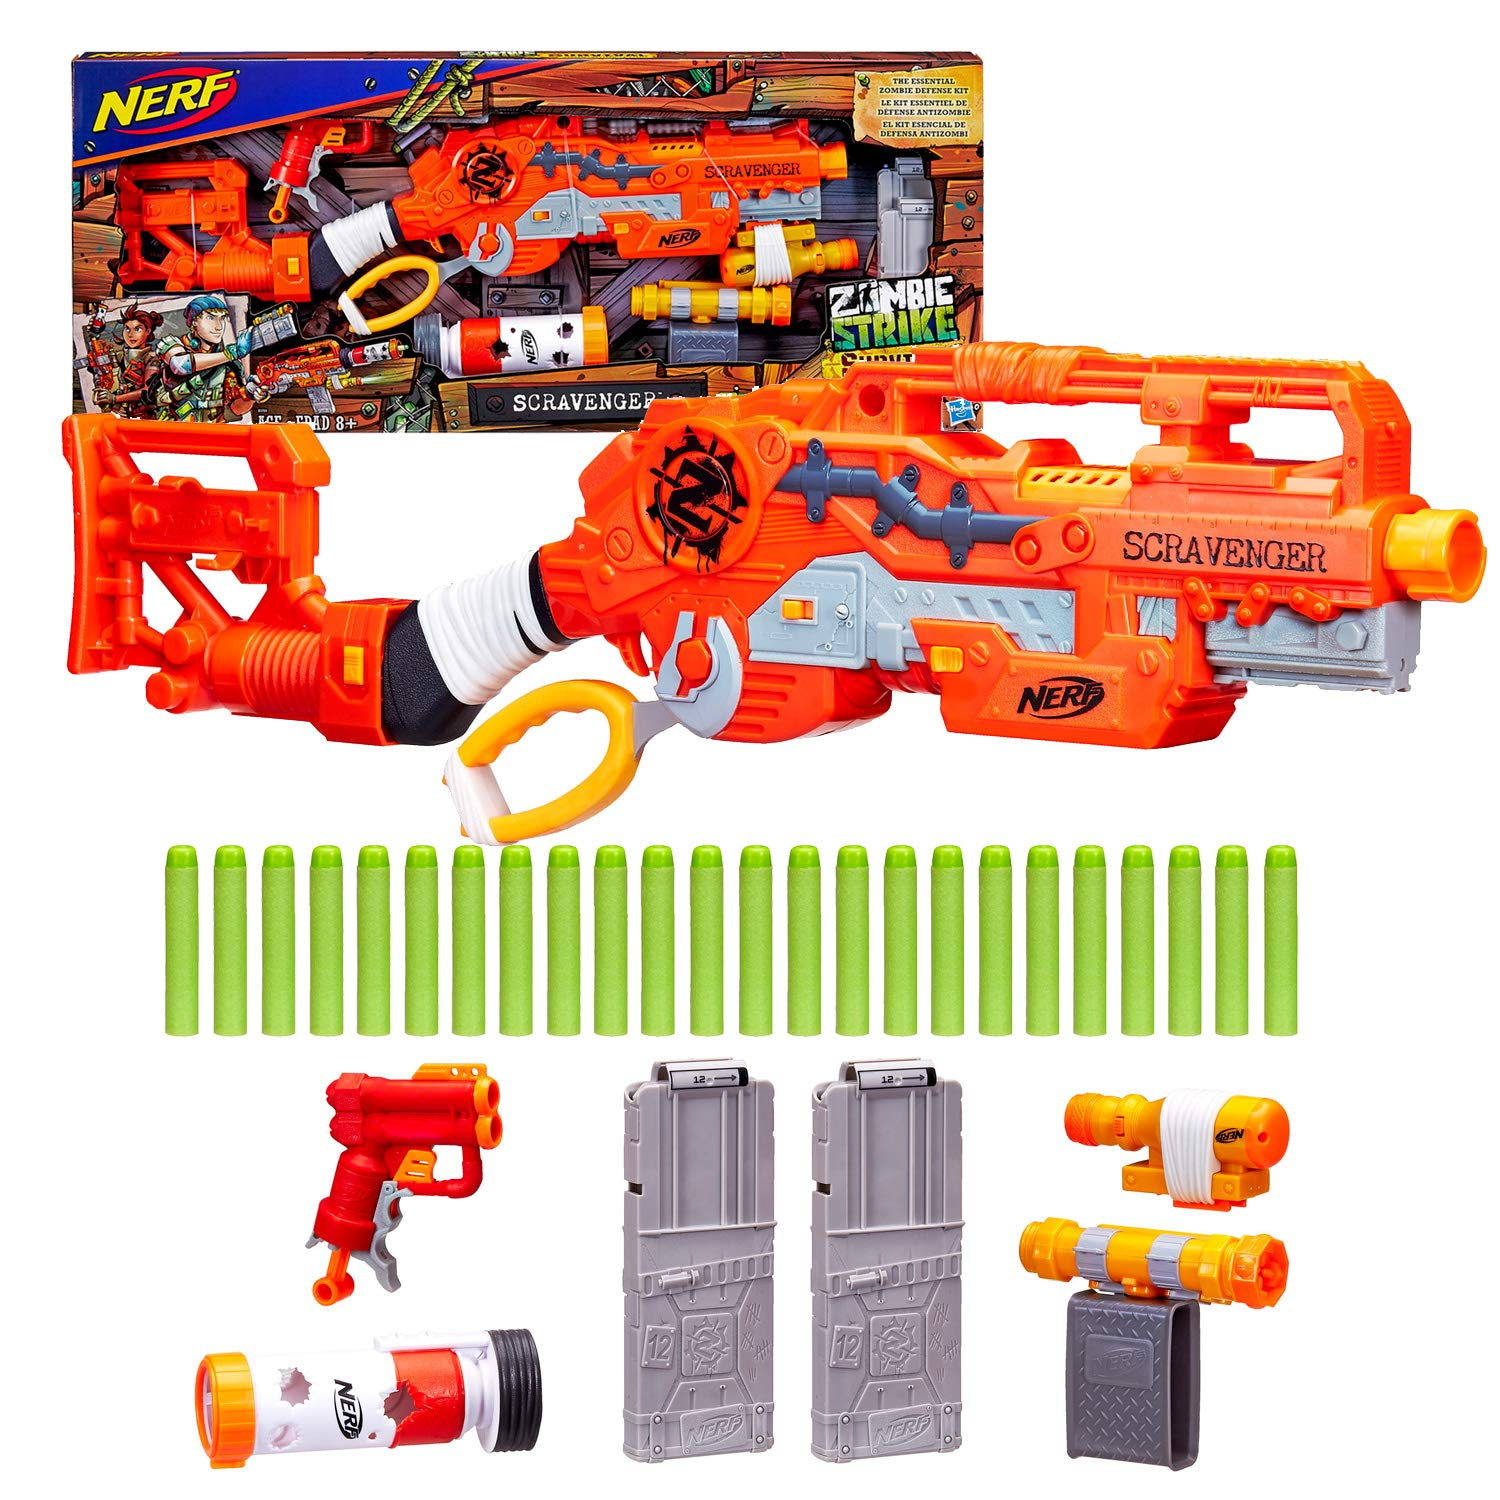 Nerf Zombie Strike ONLY $29.98...